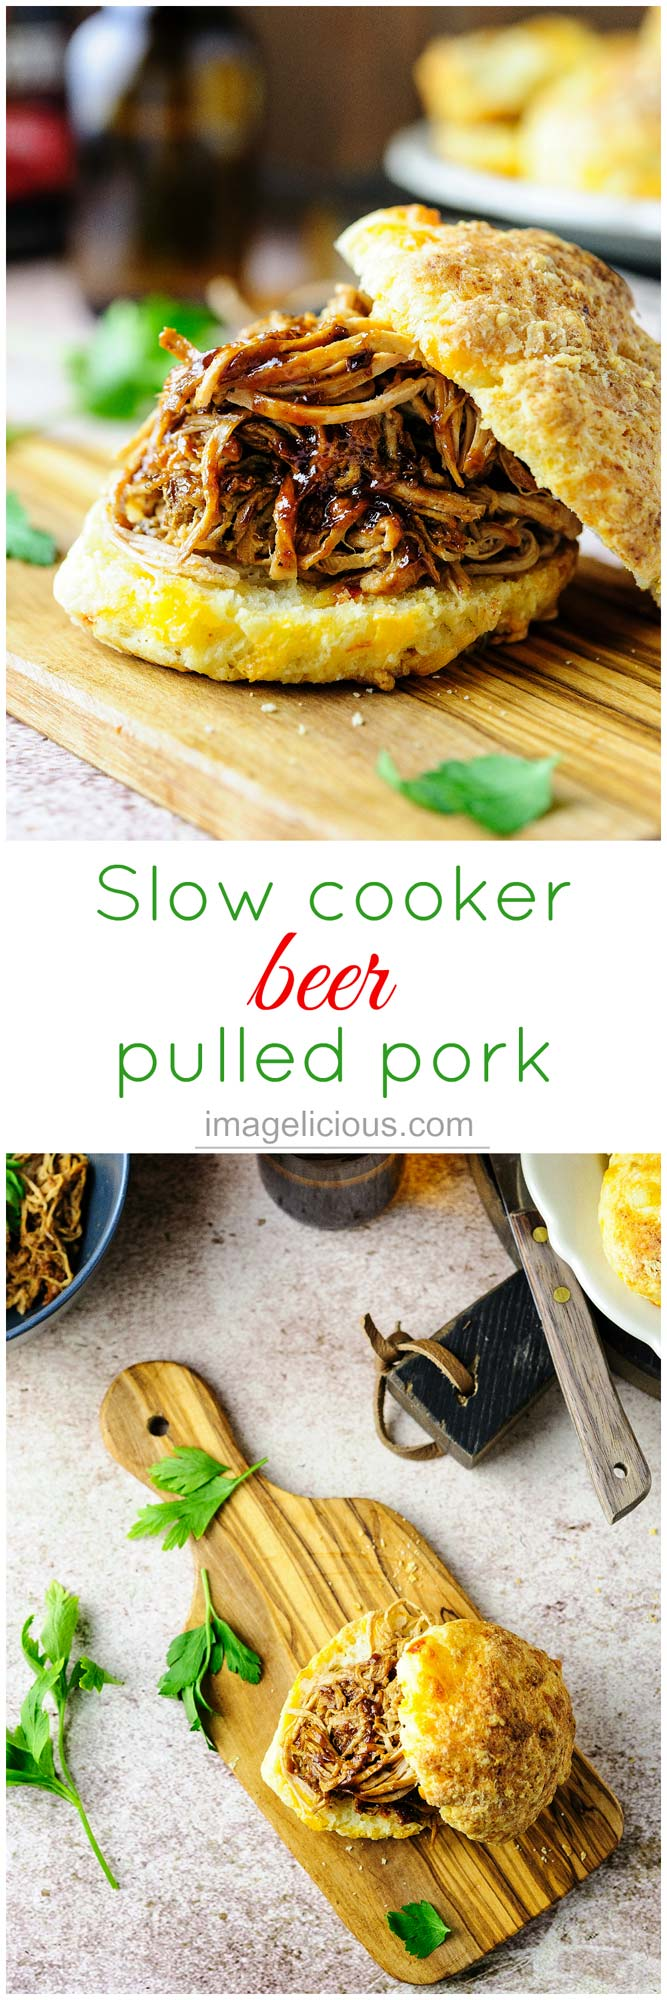 This Slow Cooker Beer Pulled Pork is easy to prepare, feeds a crowd, tastes delicious and is a little bit lighter than traditional recipes. Perfect for winter months and entertaining | Imagelicious